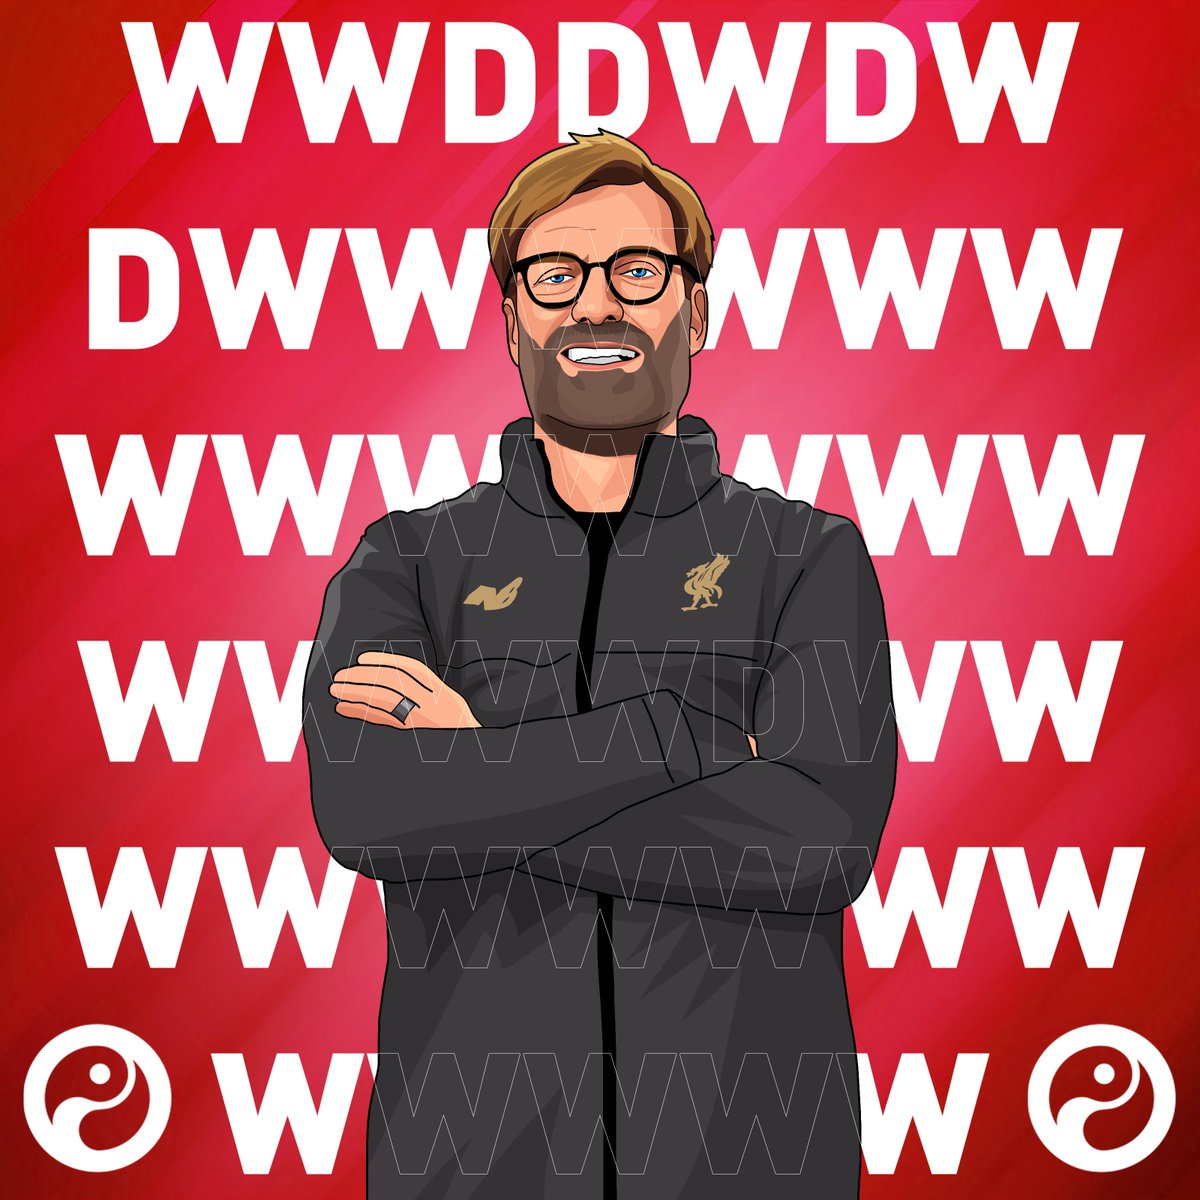 Only three teams in the Premier League era have gone 40+ games undefeated:   Arsenal (49)  Chelsea (40)  Liverpool (40)  One step closer to reaching the Gunners. <br>http://pic.twitter.com/Ghfwi4xP6R